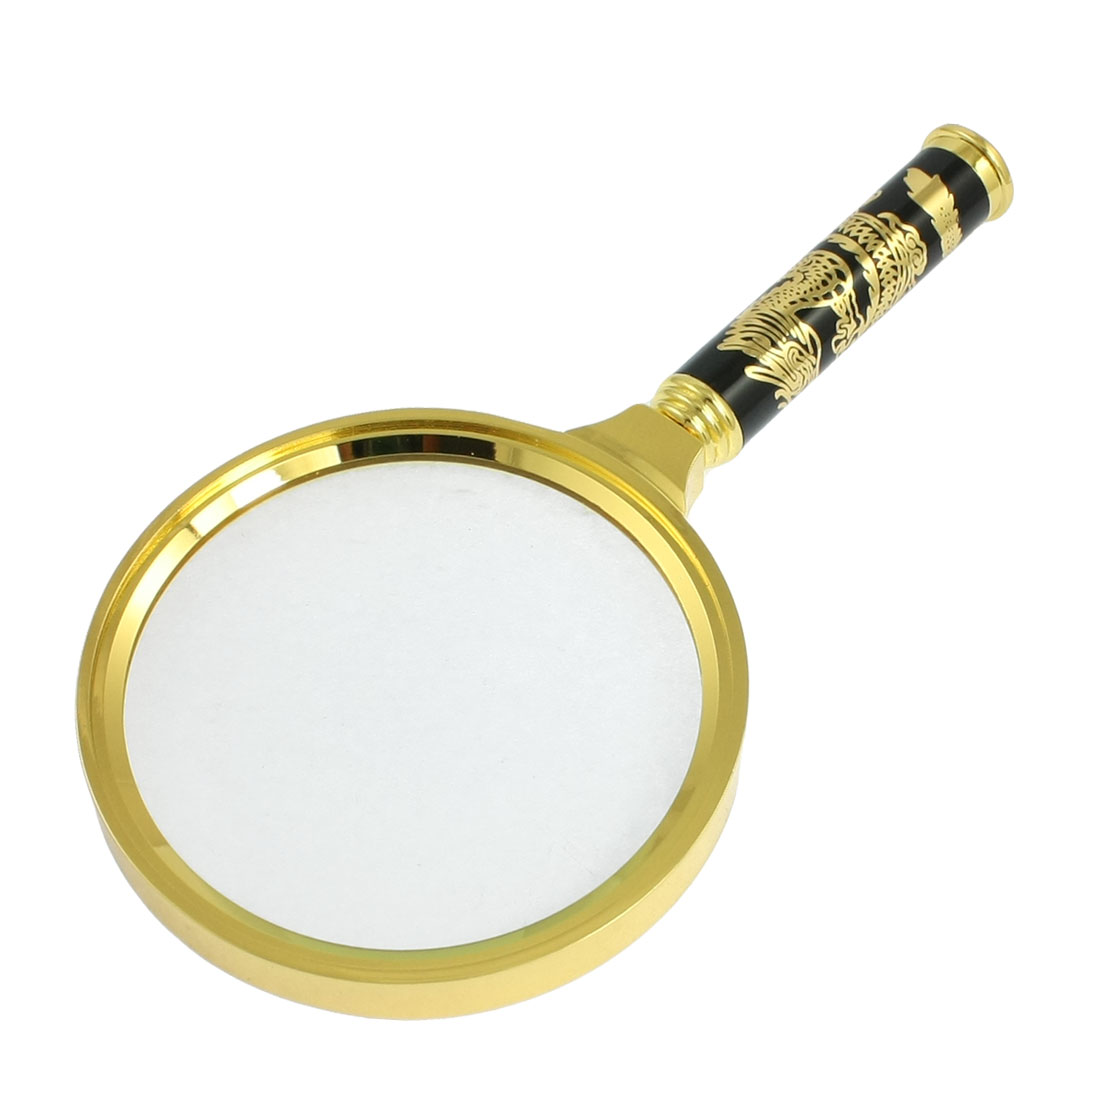 Detachable Handle 4X 90mm Magnifier Magnifying Glass Gold Tone Black